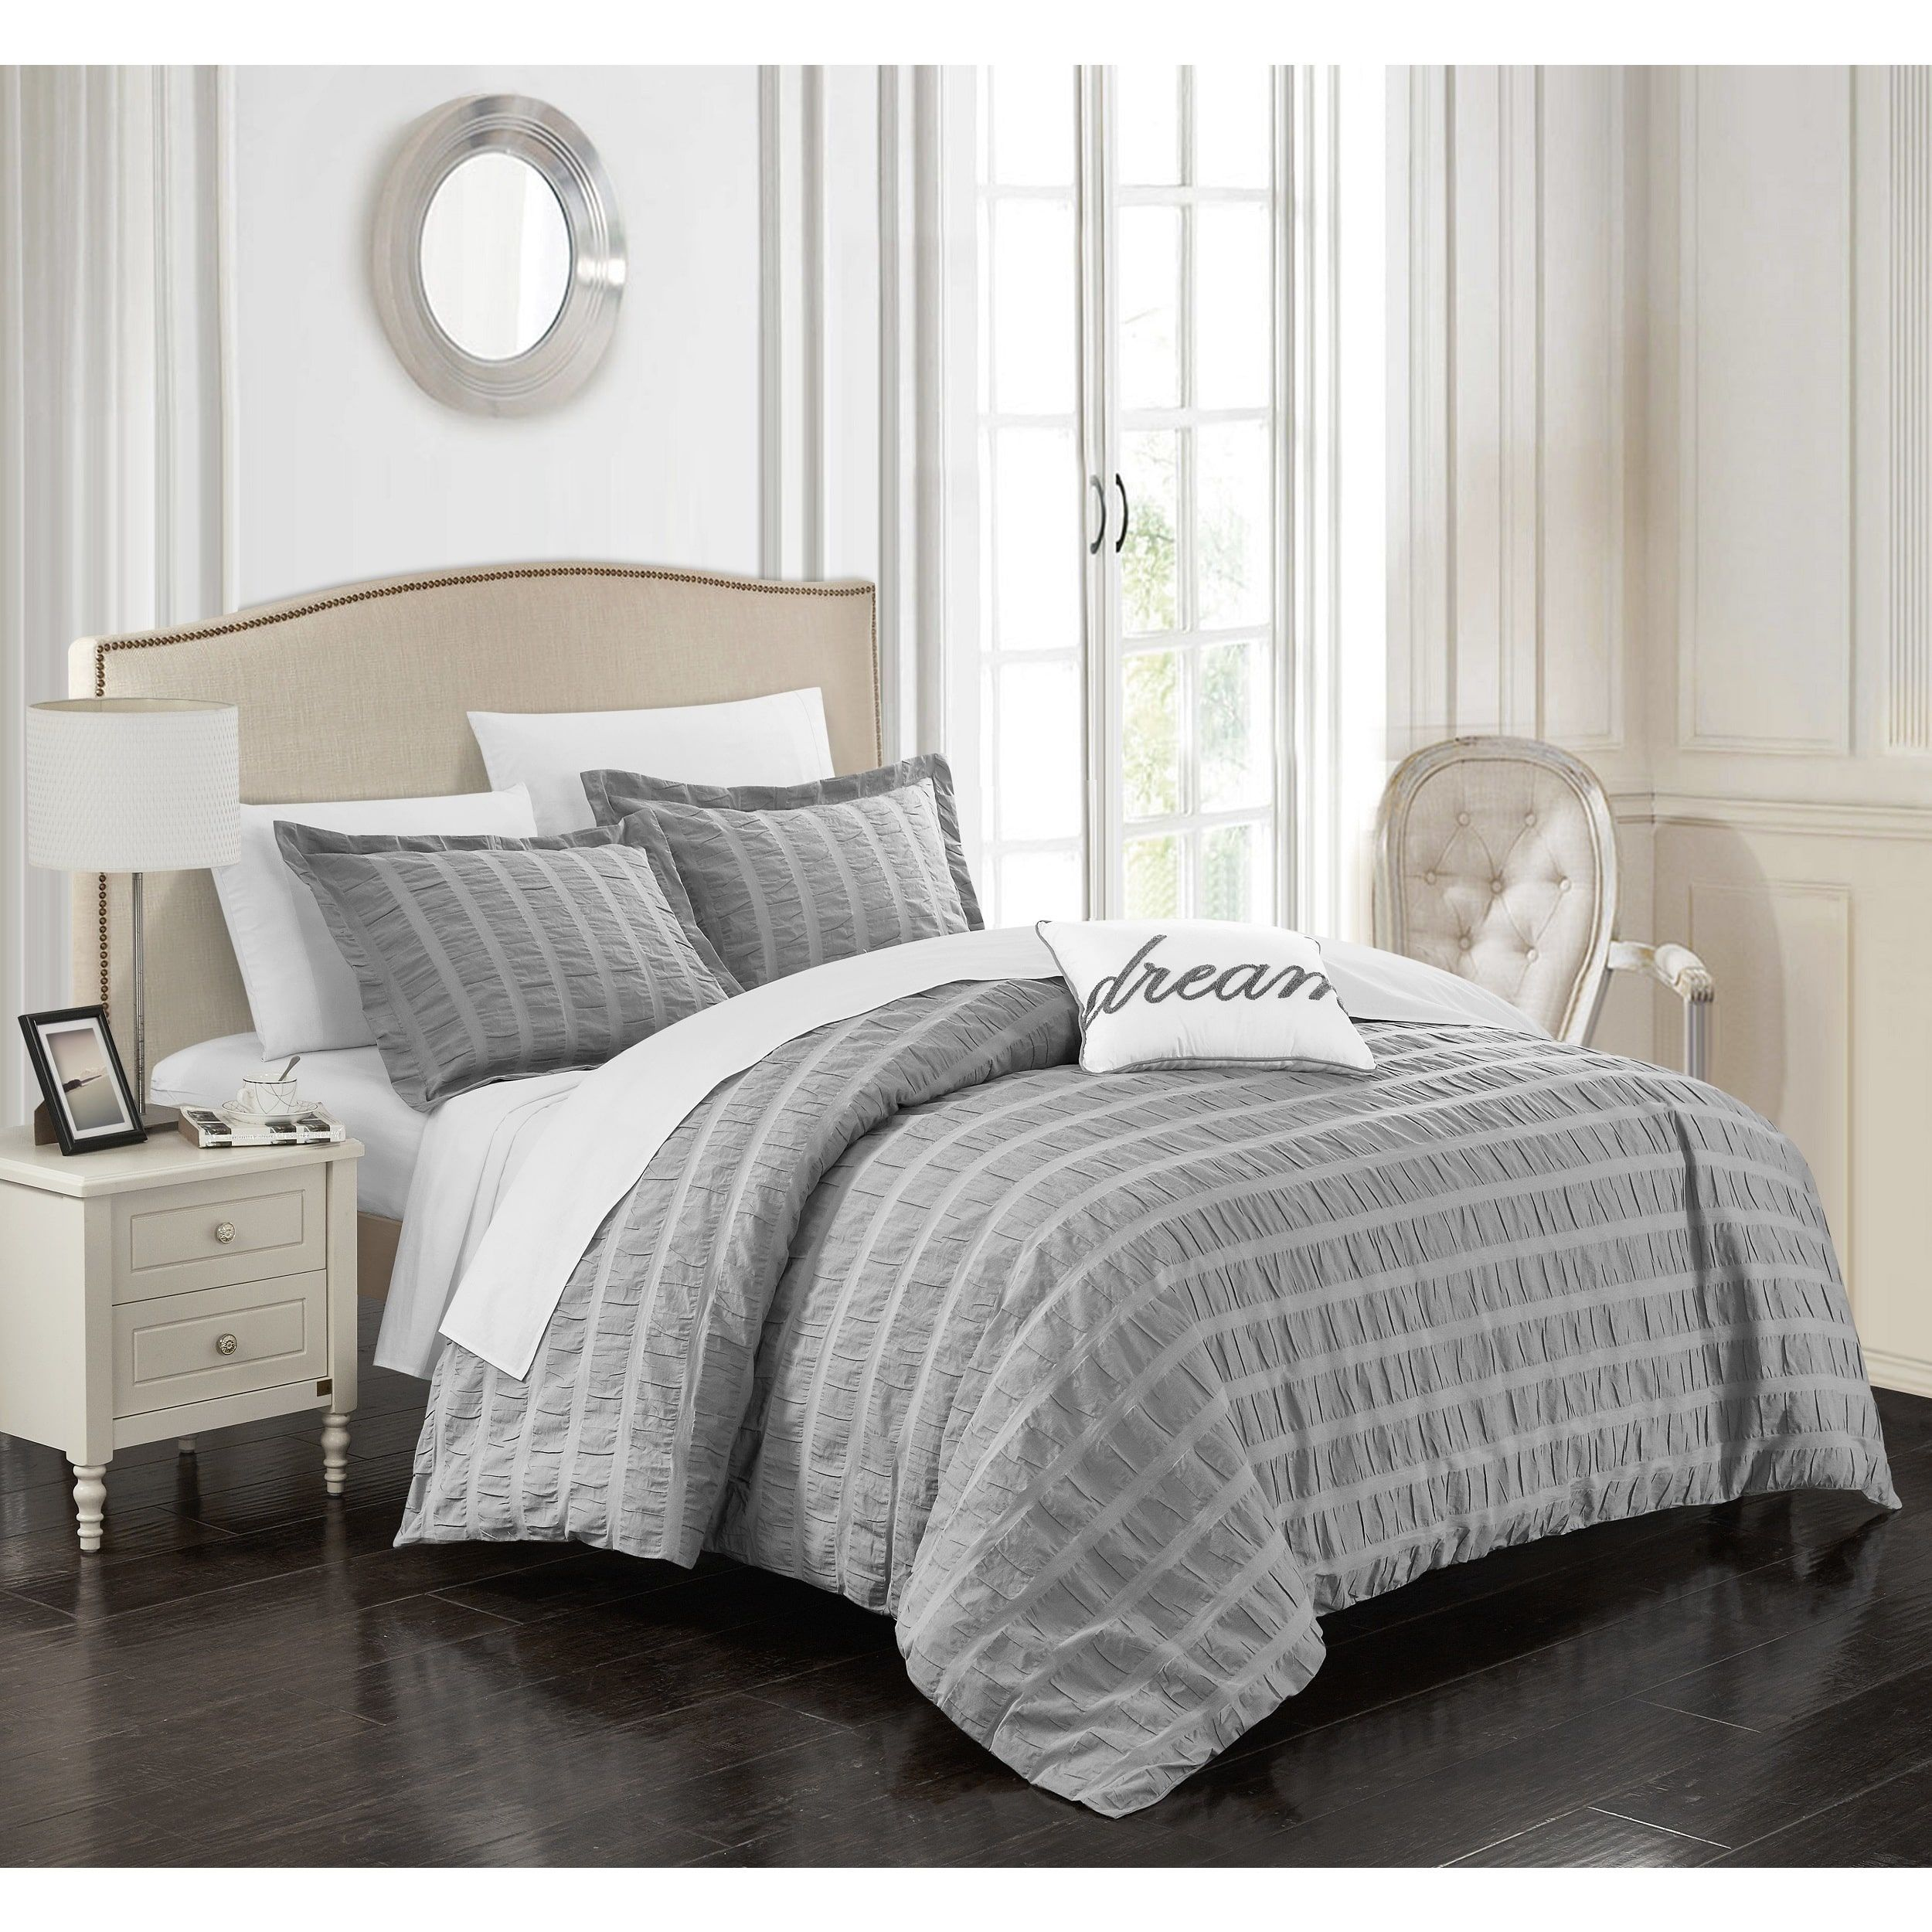 Chic Home Tornio 4 Piece 100% Duvet Cover Set | Products | Pinterest ...